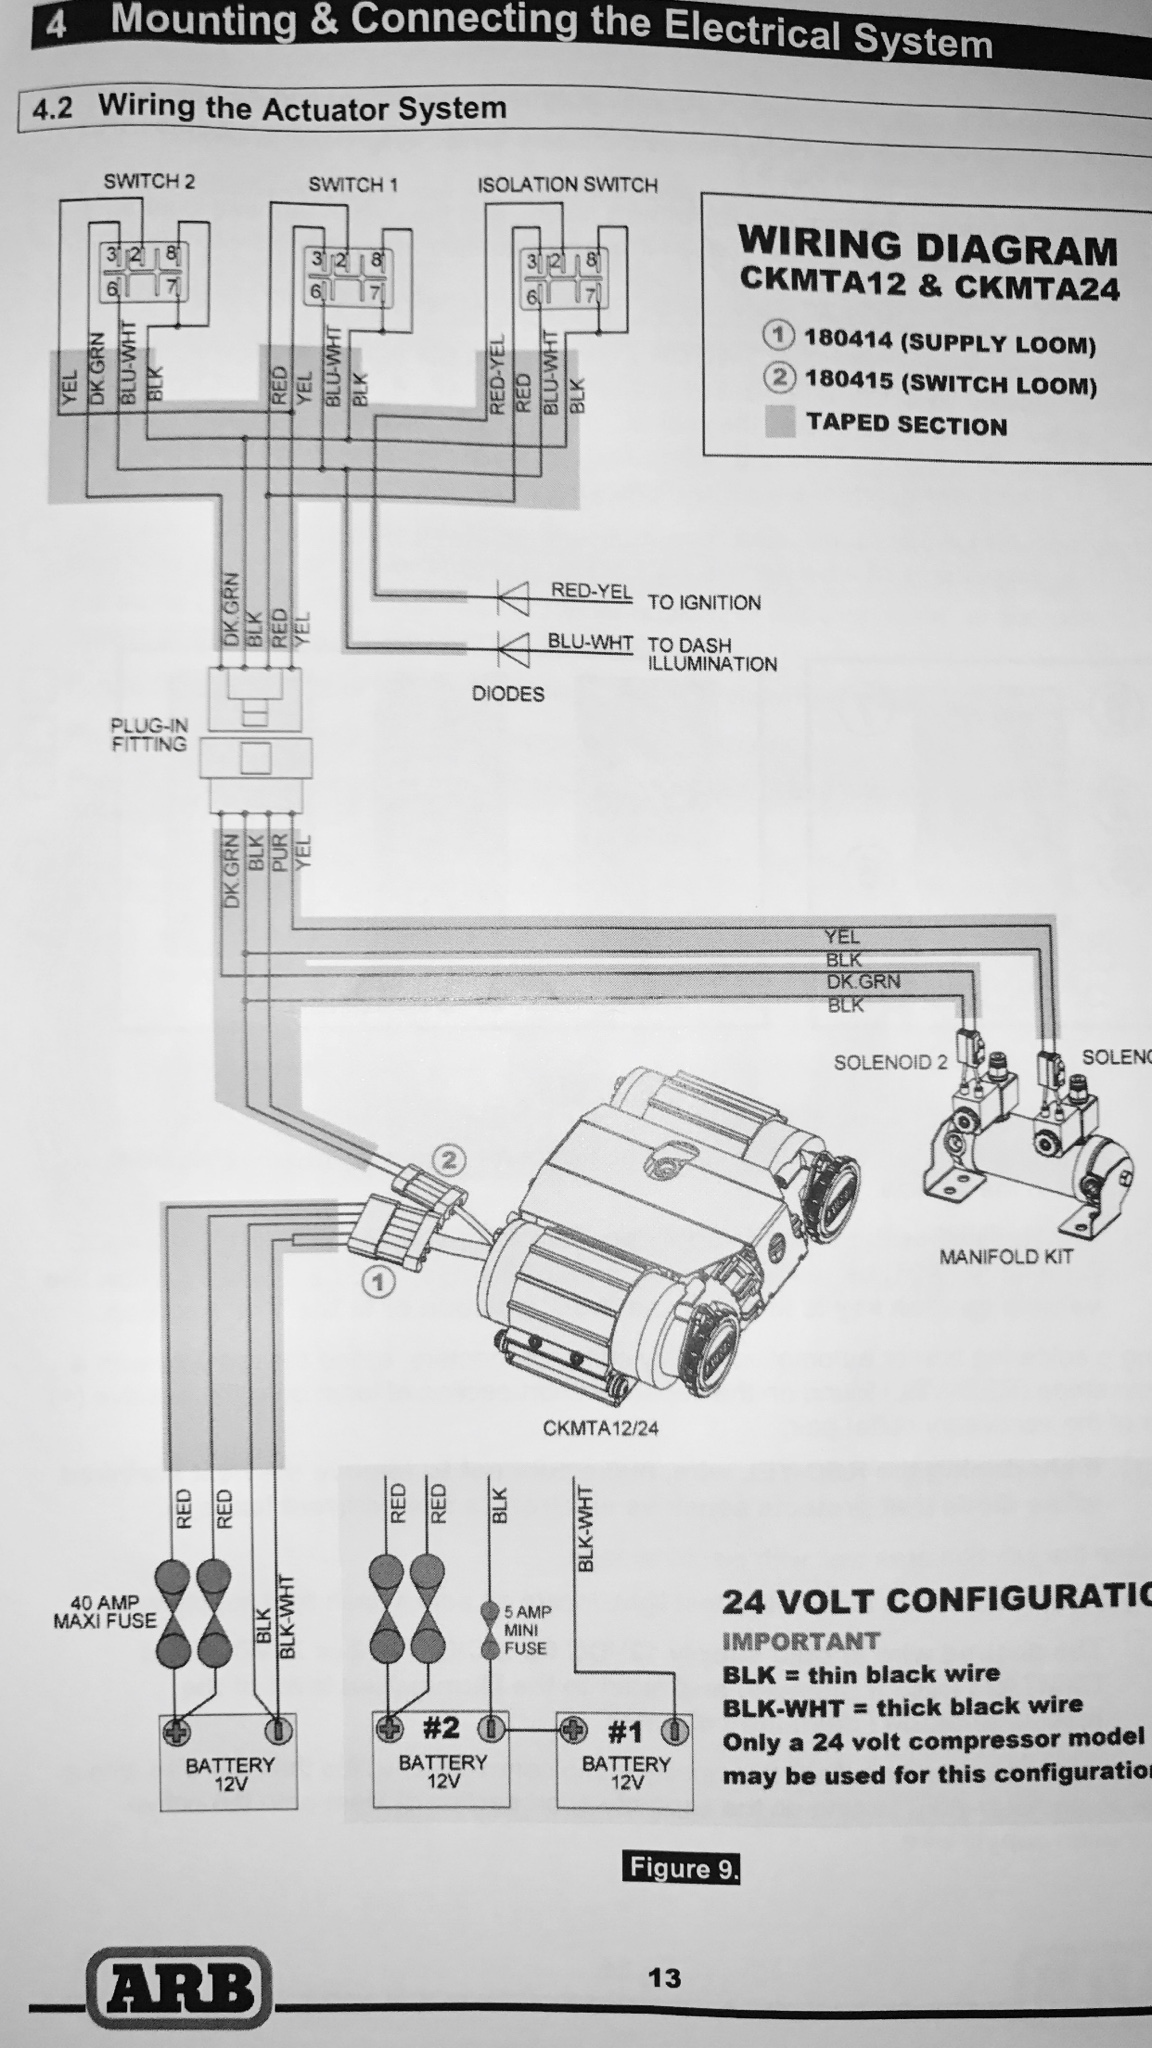 Wiring Diagram For Bristol Compressor : Arb twin compressor wiring diagram